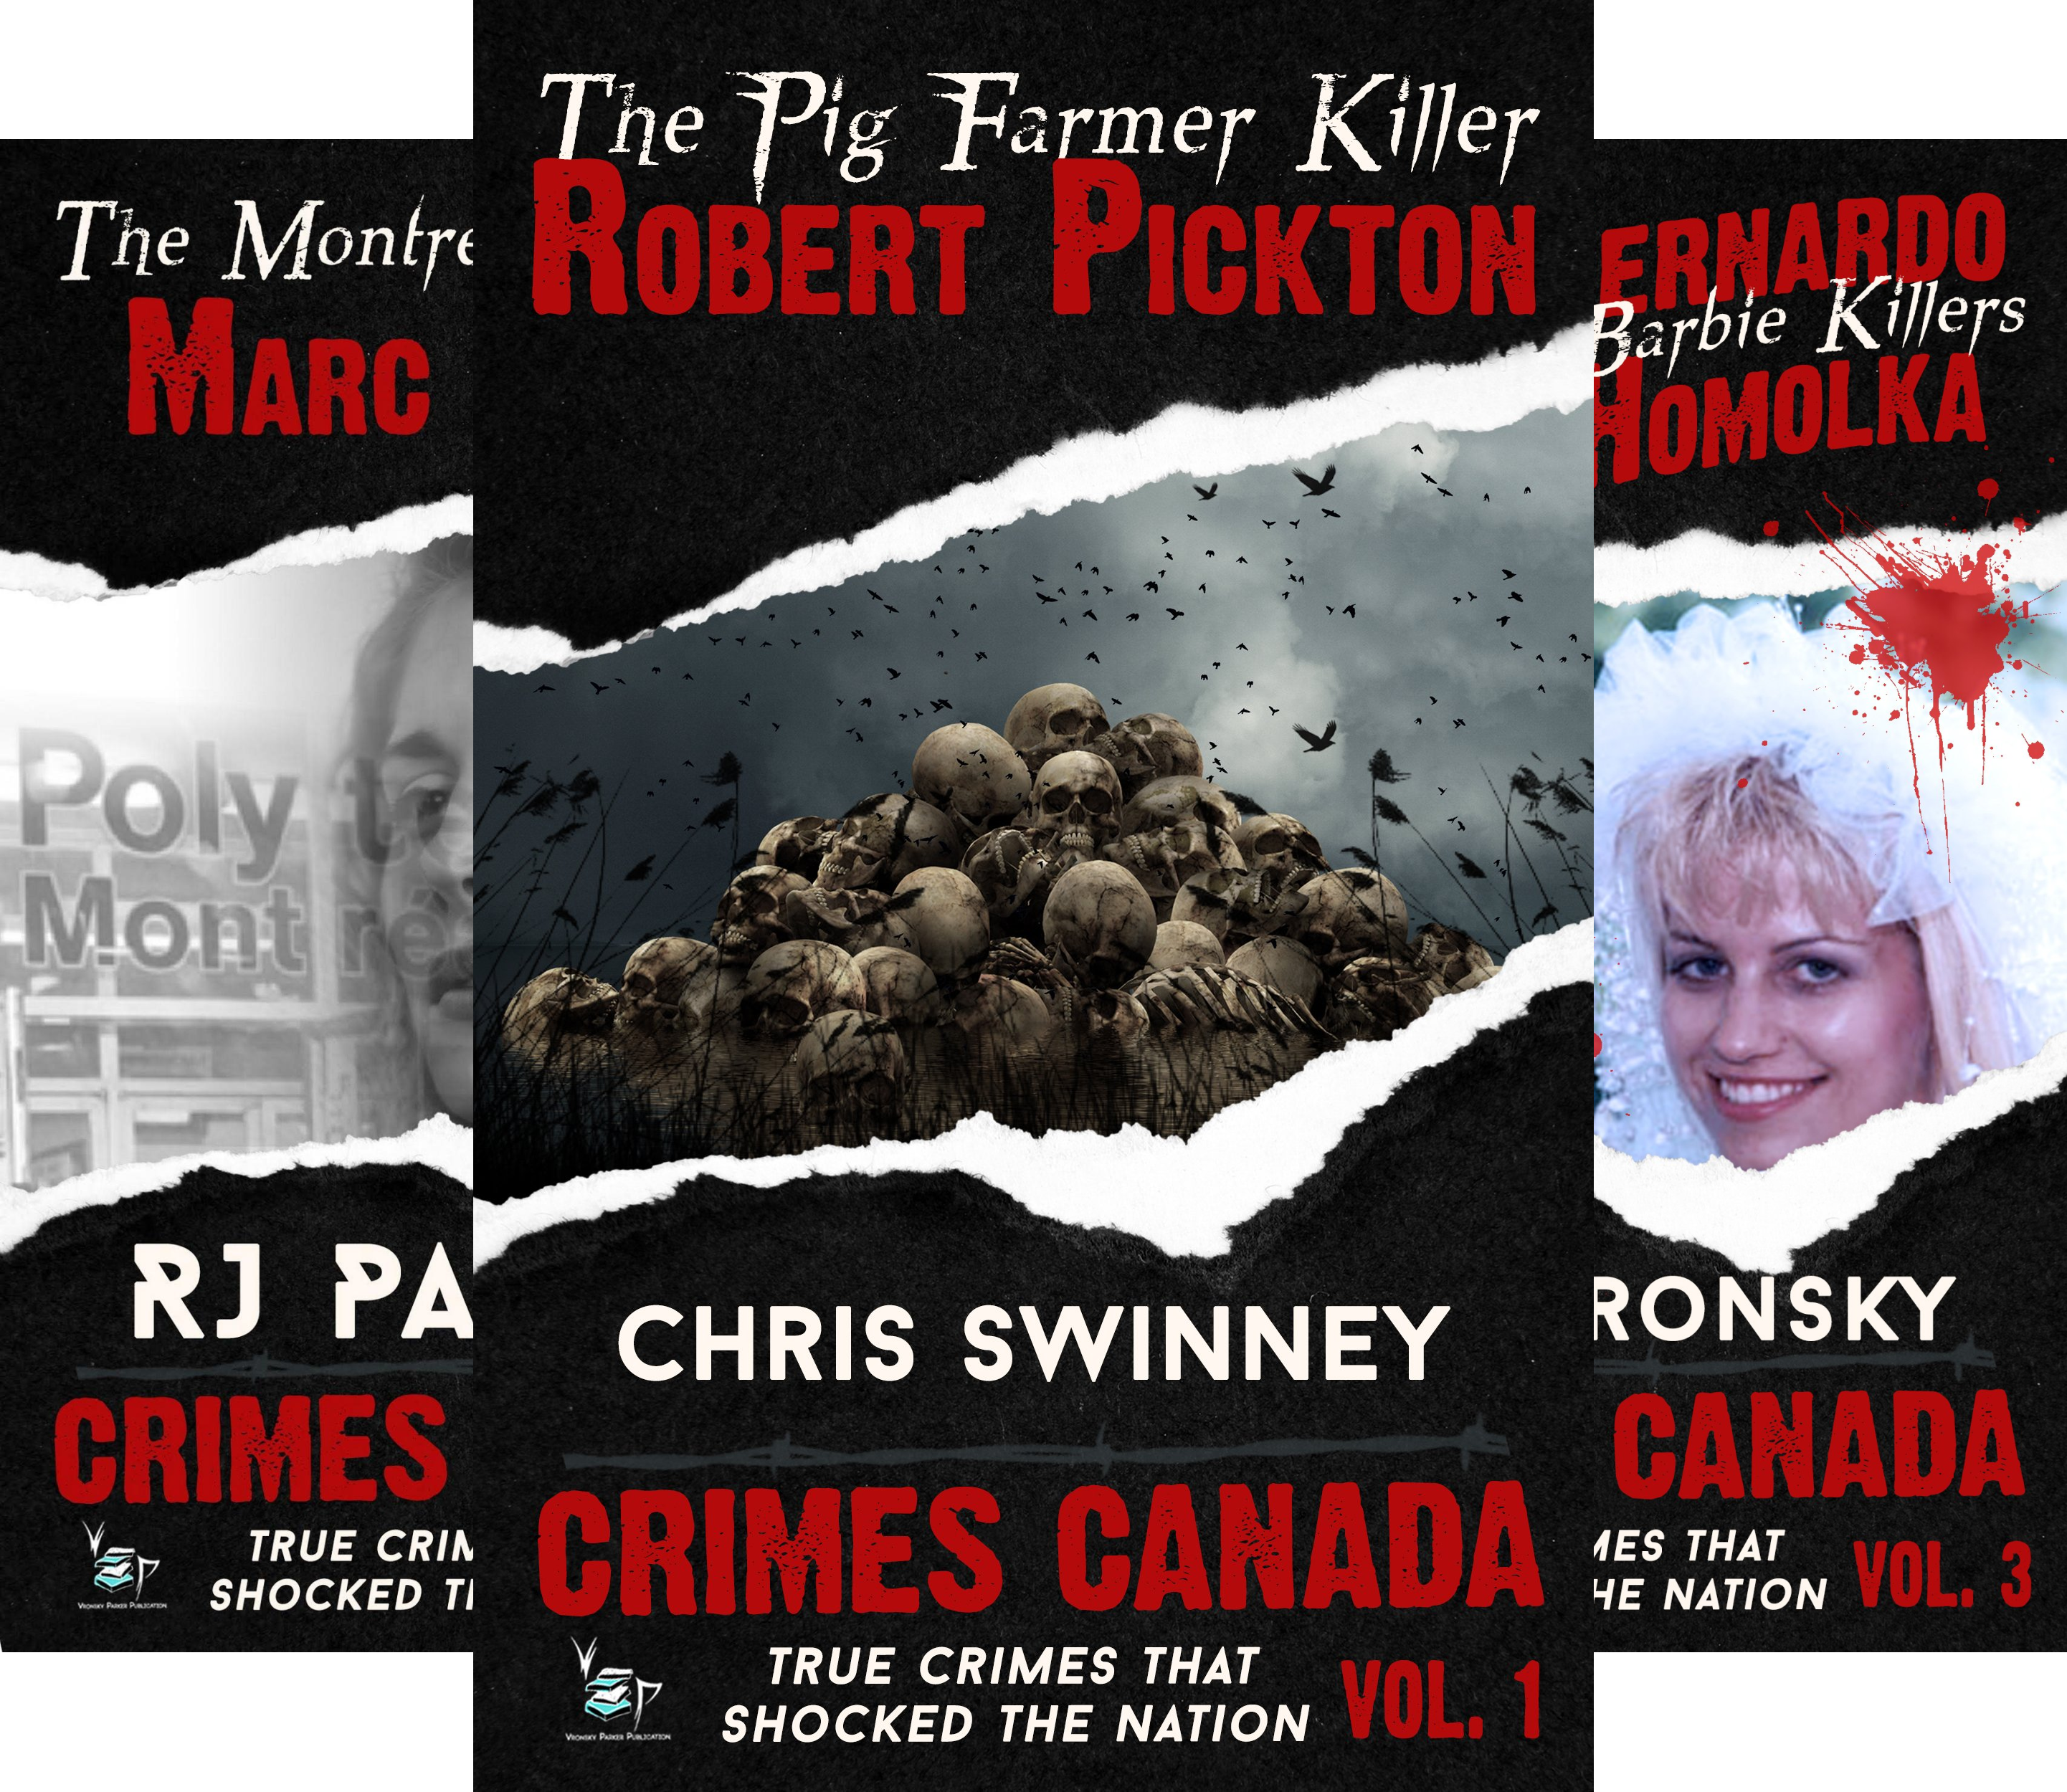 Crimes Canada: True Crimes That Shocked the Nation (19 Book Series)